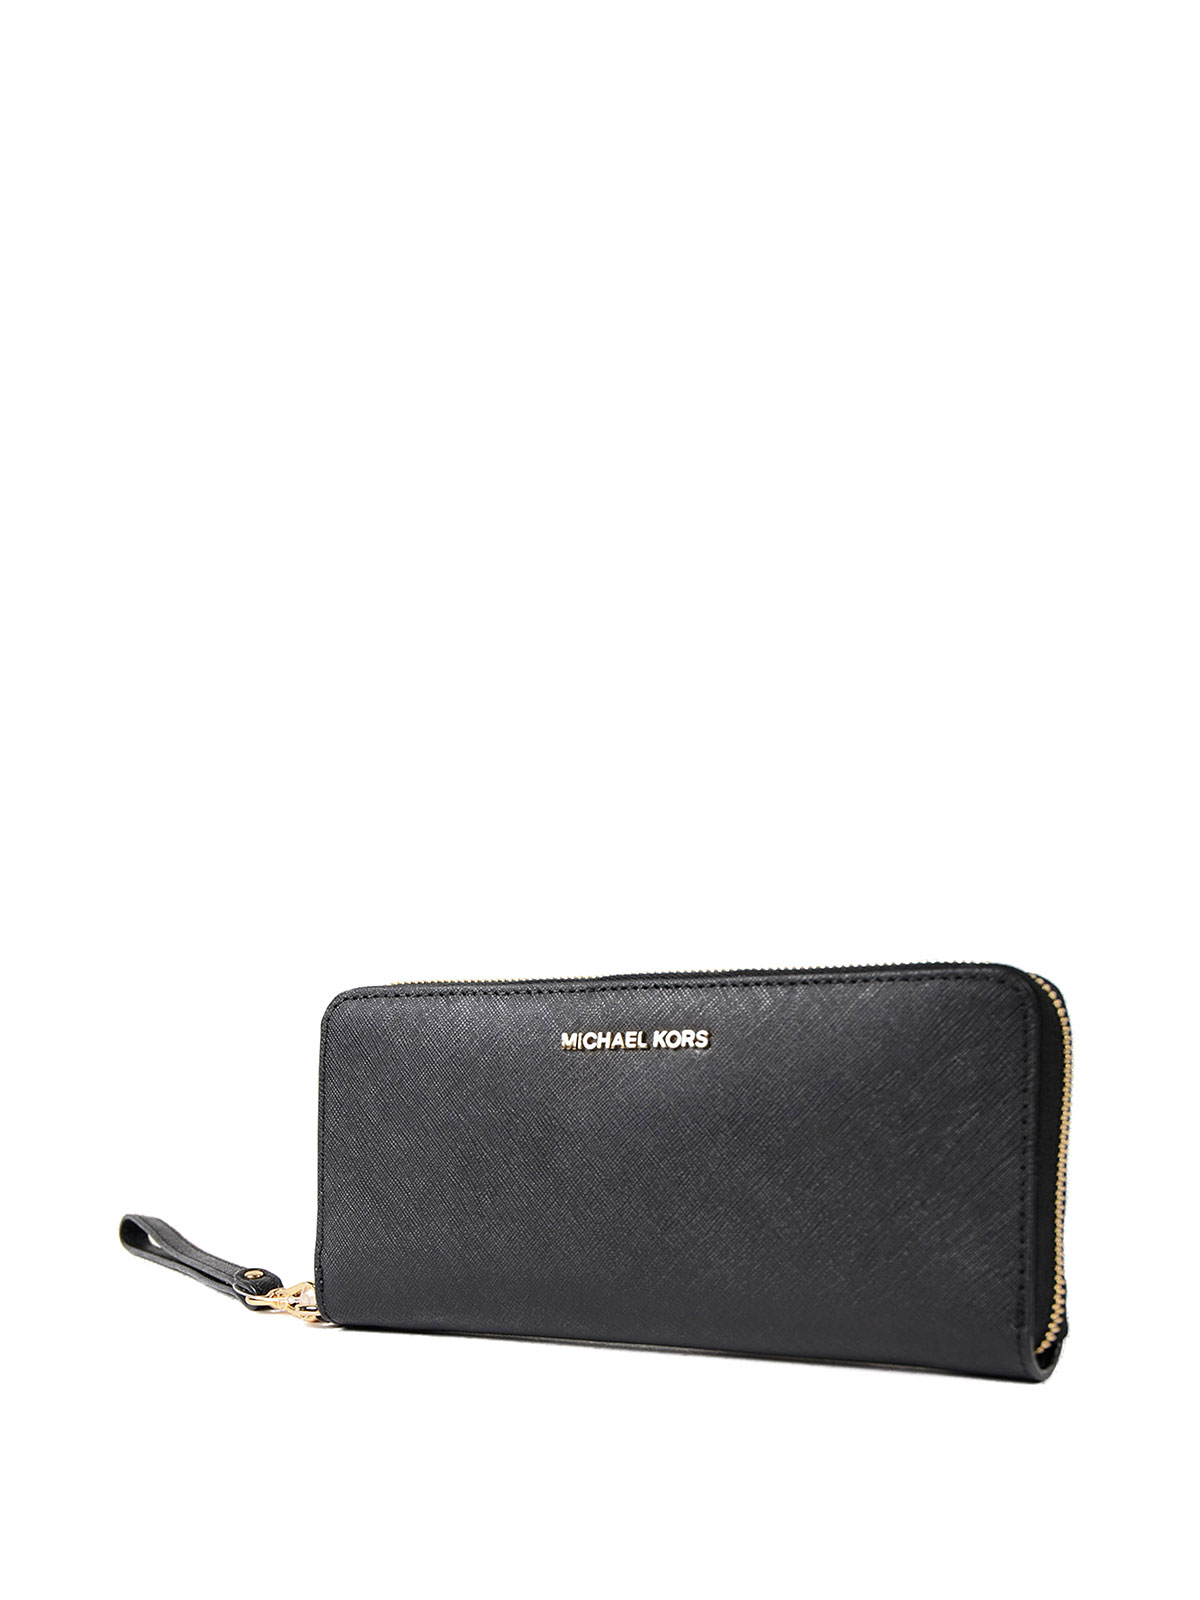 2ba2b565310b MICHAEL KORS  wallets   purses online - Jet Set Travel black wallet